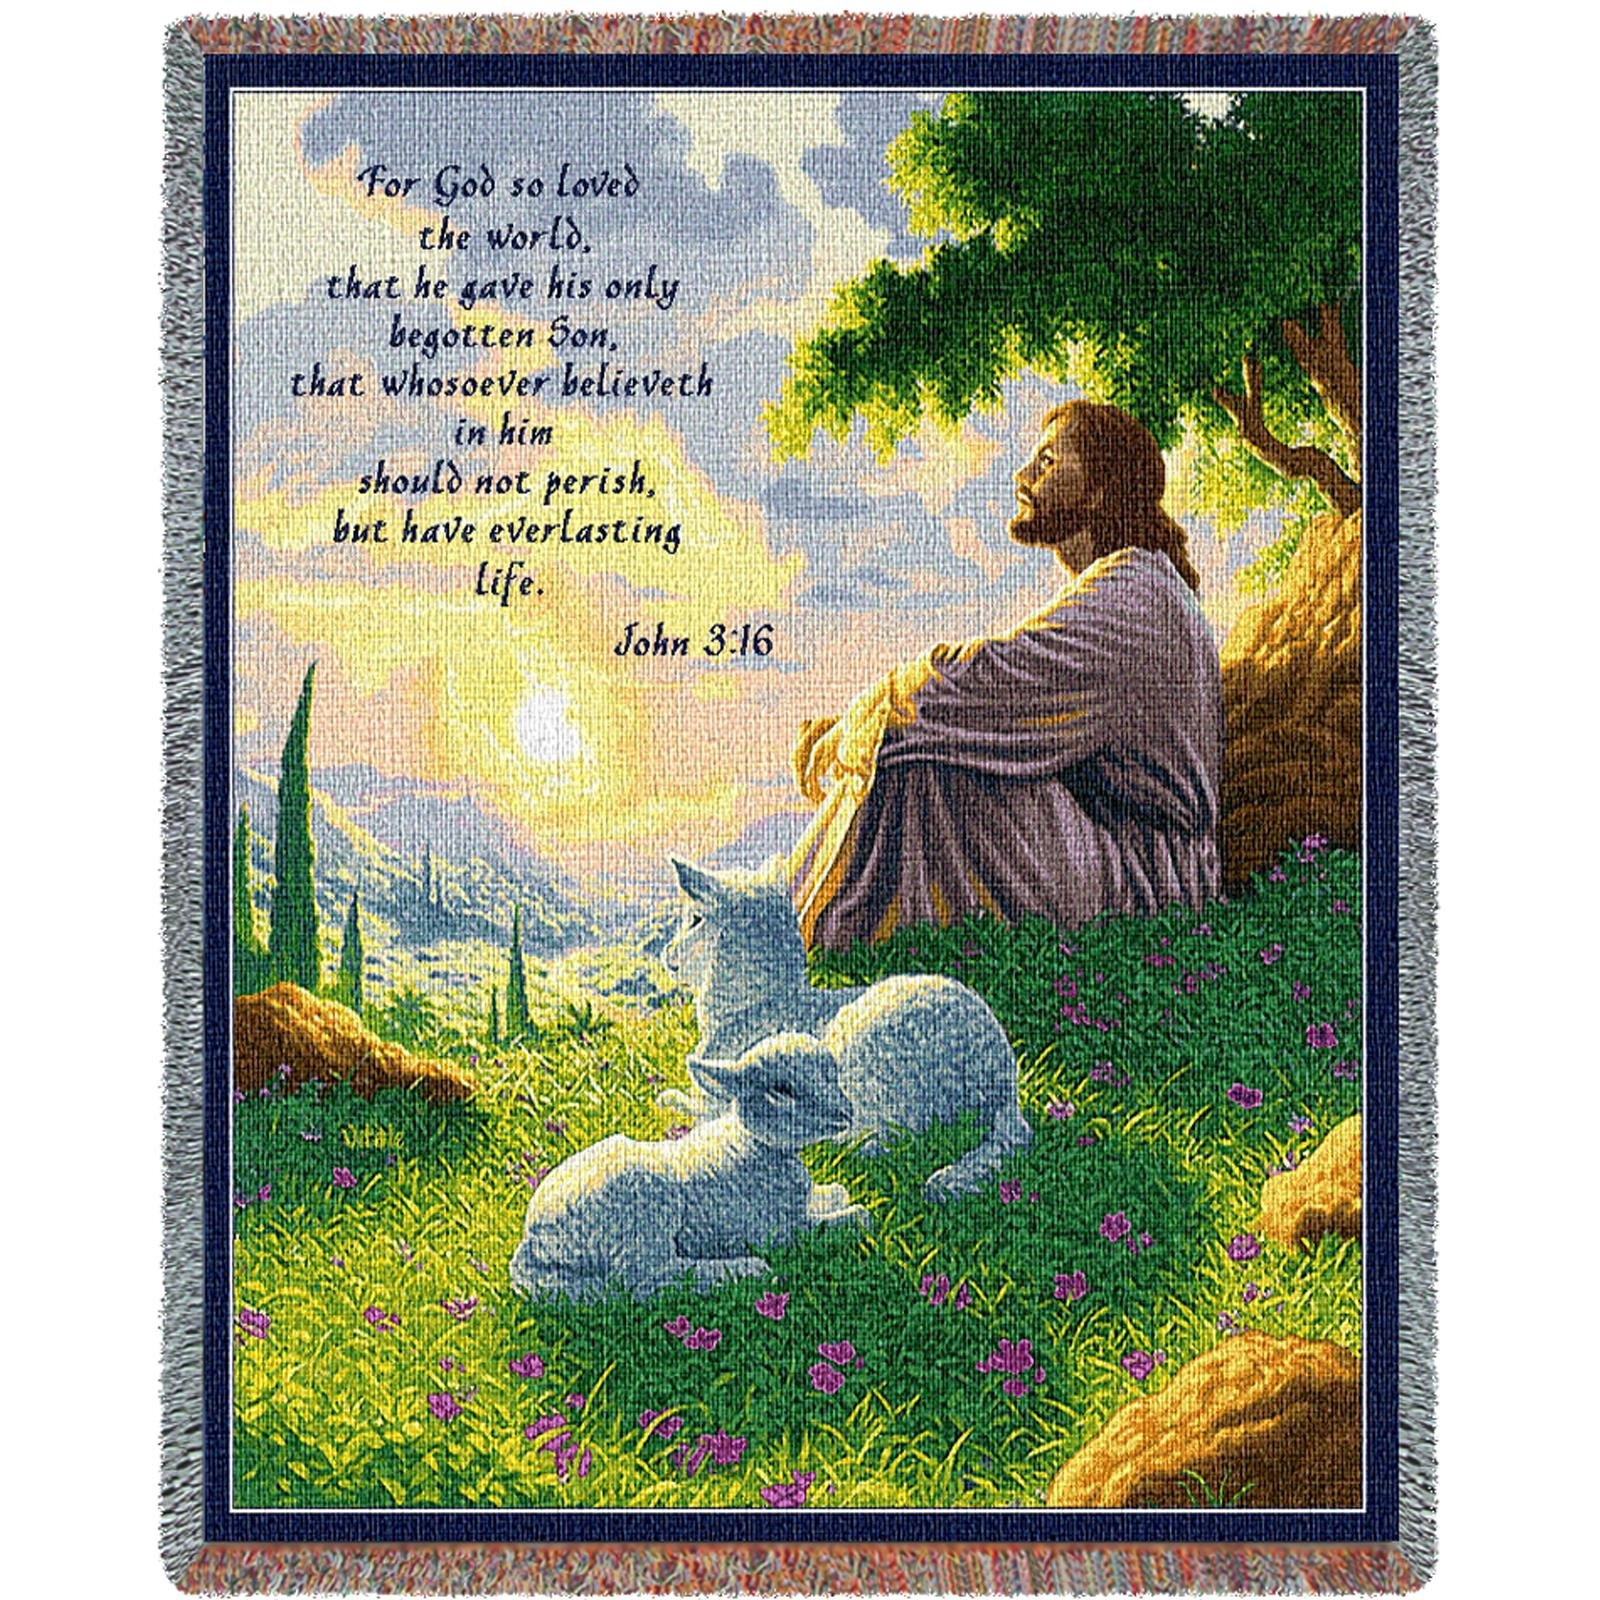 Pure Country Inc. John 3:16 Green Pastures Blanket Tapestry Throw, 54x70, Multi Colored Woven Cotton Yarn by Pure Country